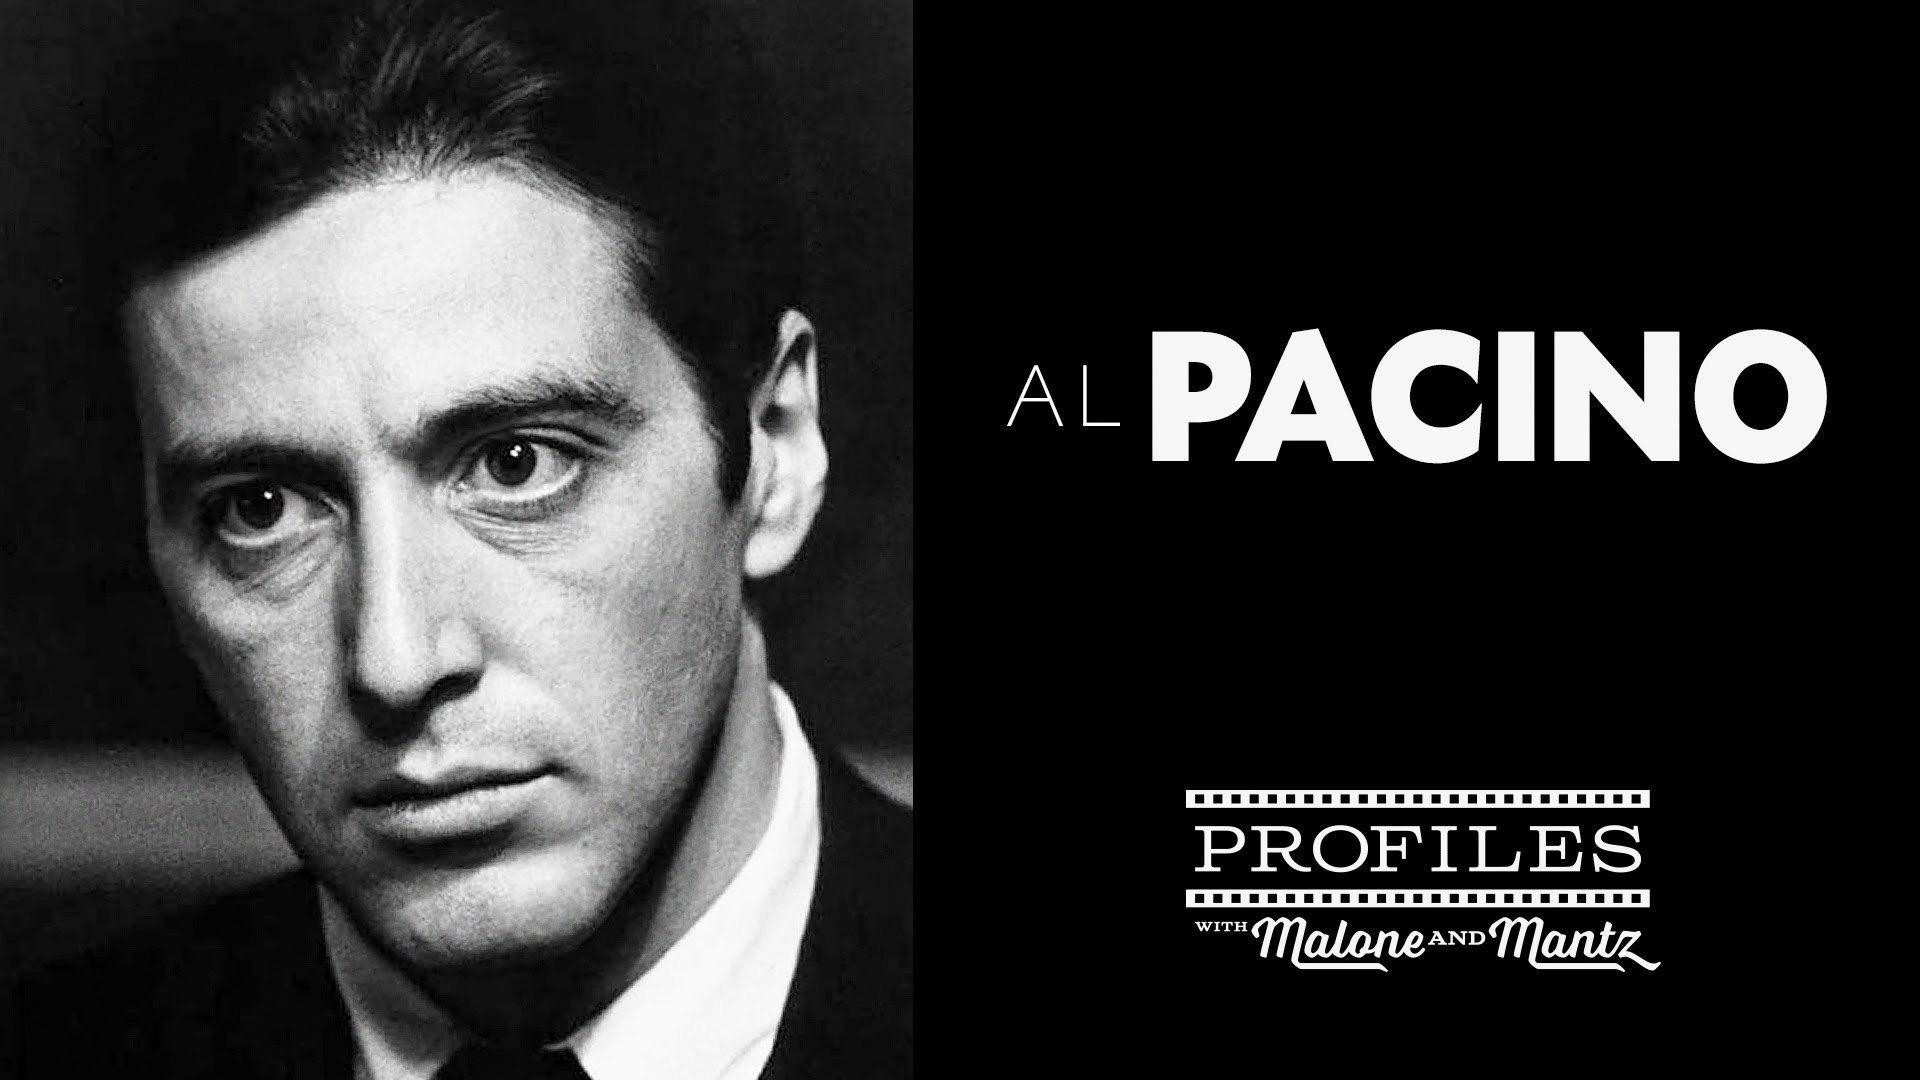 Al Pacino Wallpapers Images Photos Pictures Backgrounds - Money Makes Your Life Easier If You - HD Wallpaper